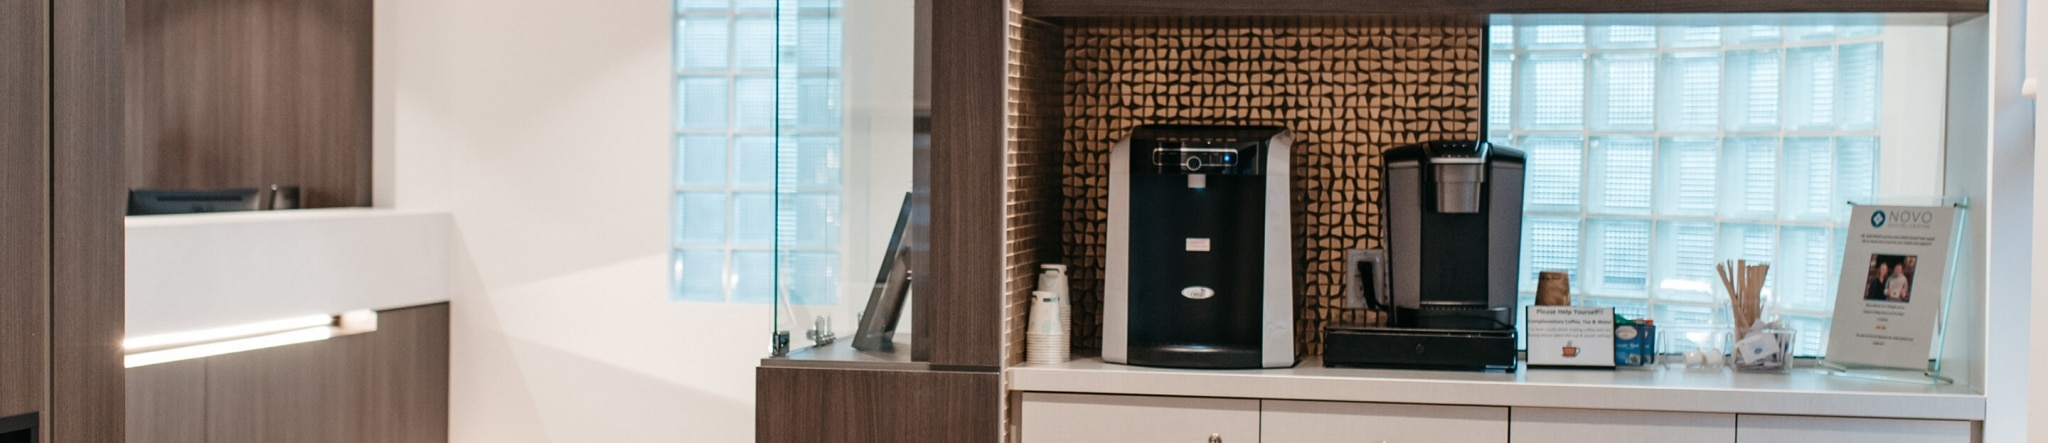 NOVO Dental Centre coffee and water bar